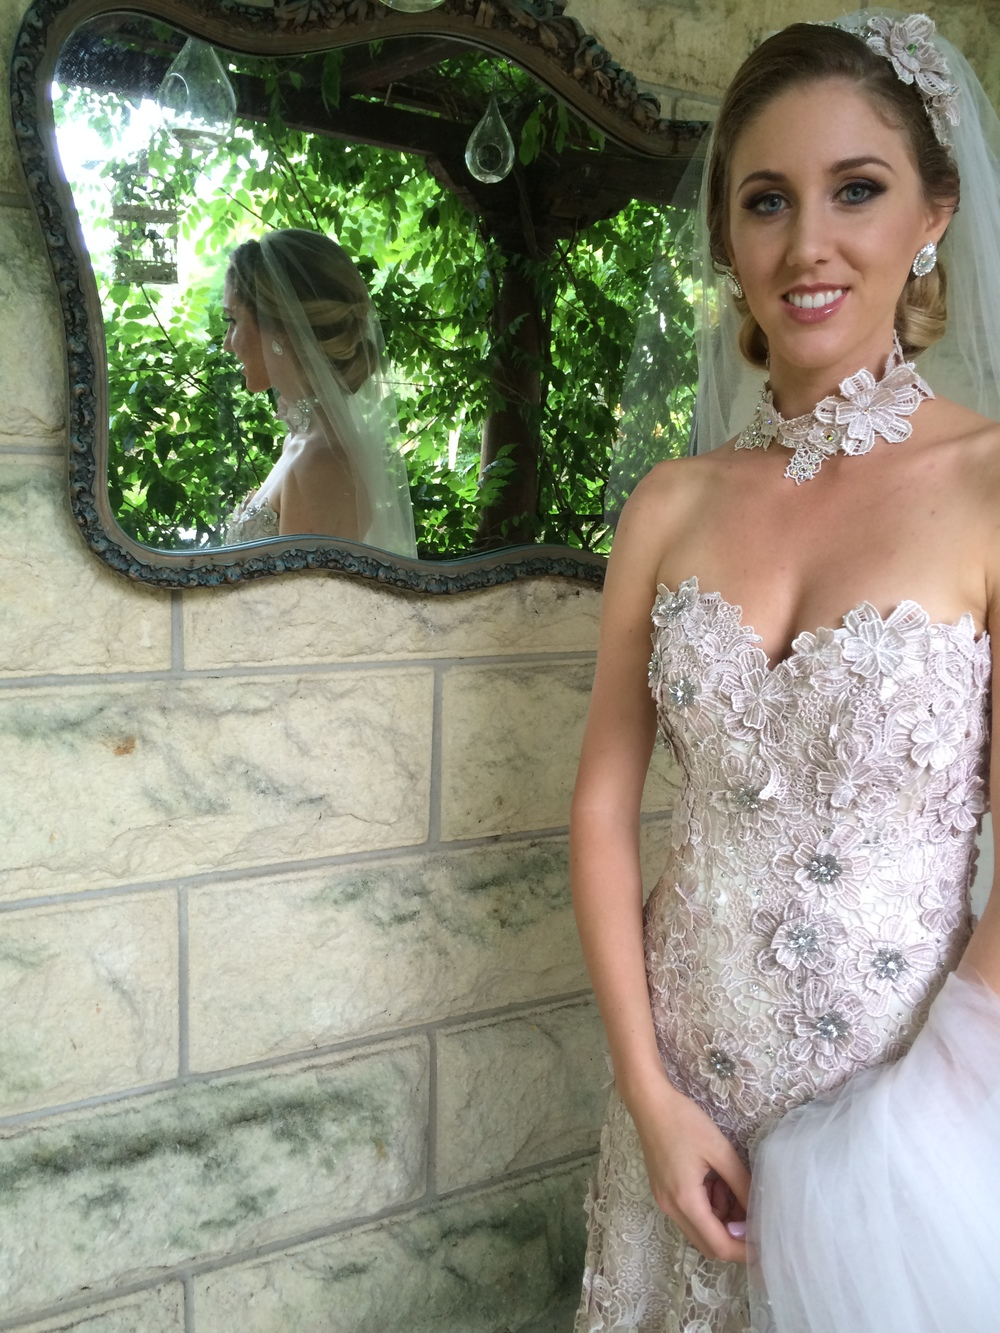 Helena Couture Designs - Multi Award Winning Australian Bridal Label